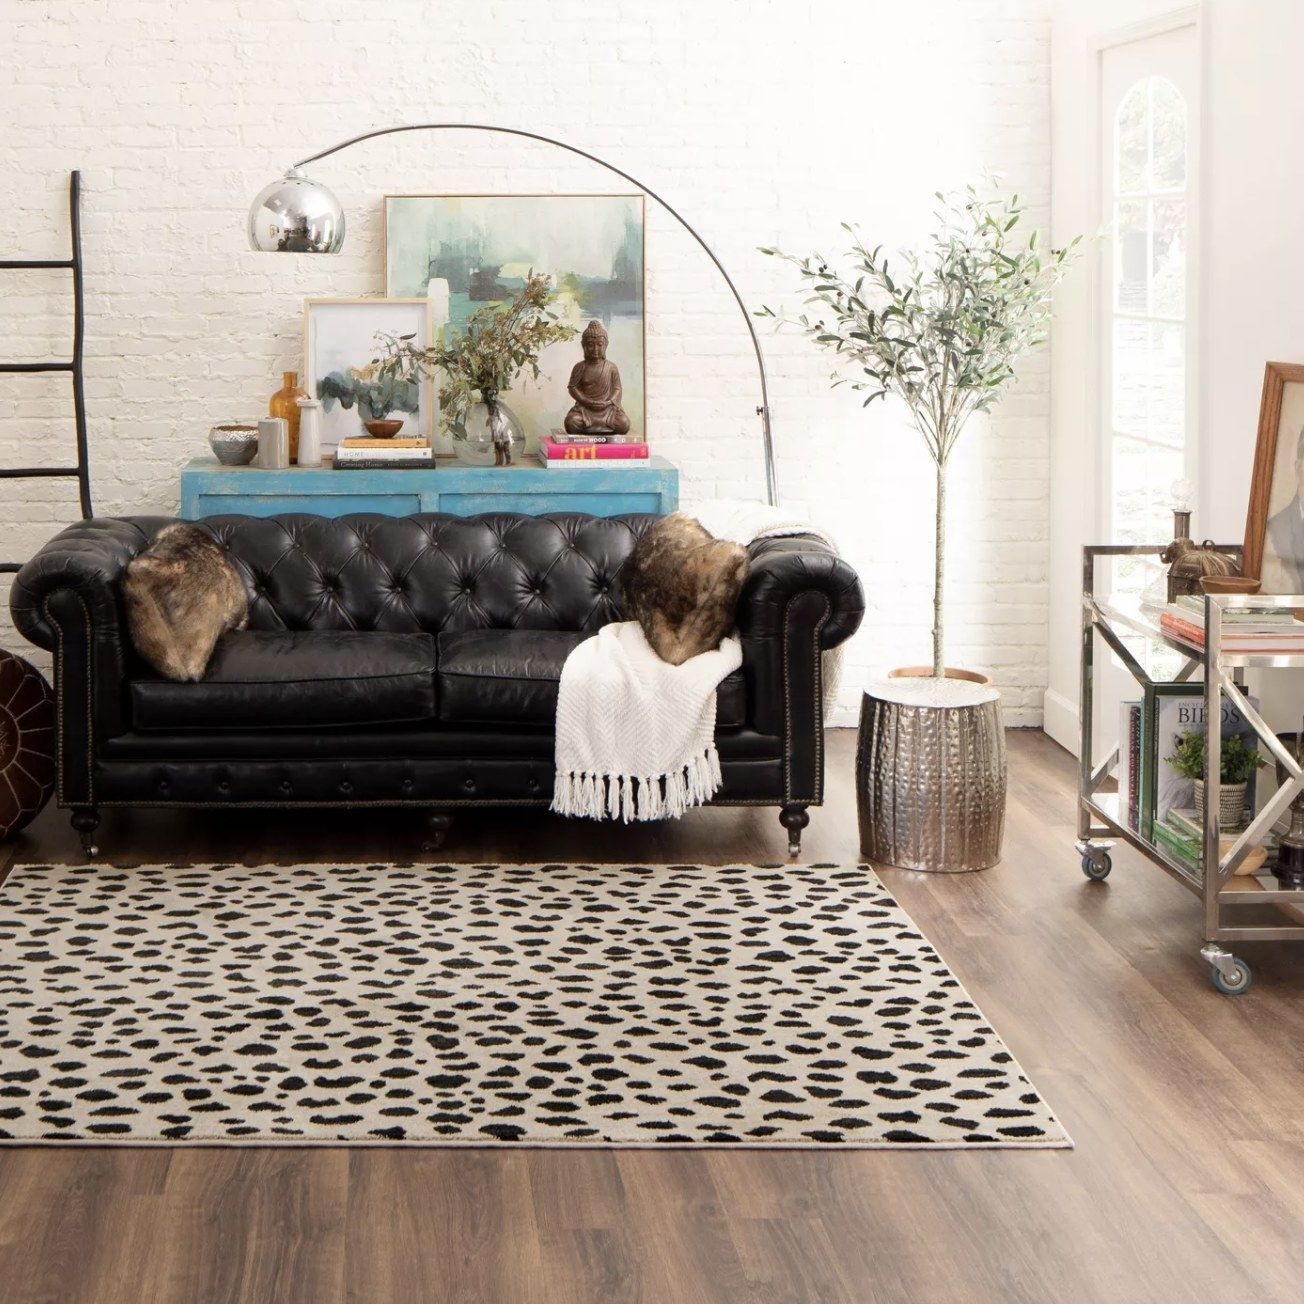 The leopard print rug in a living space